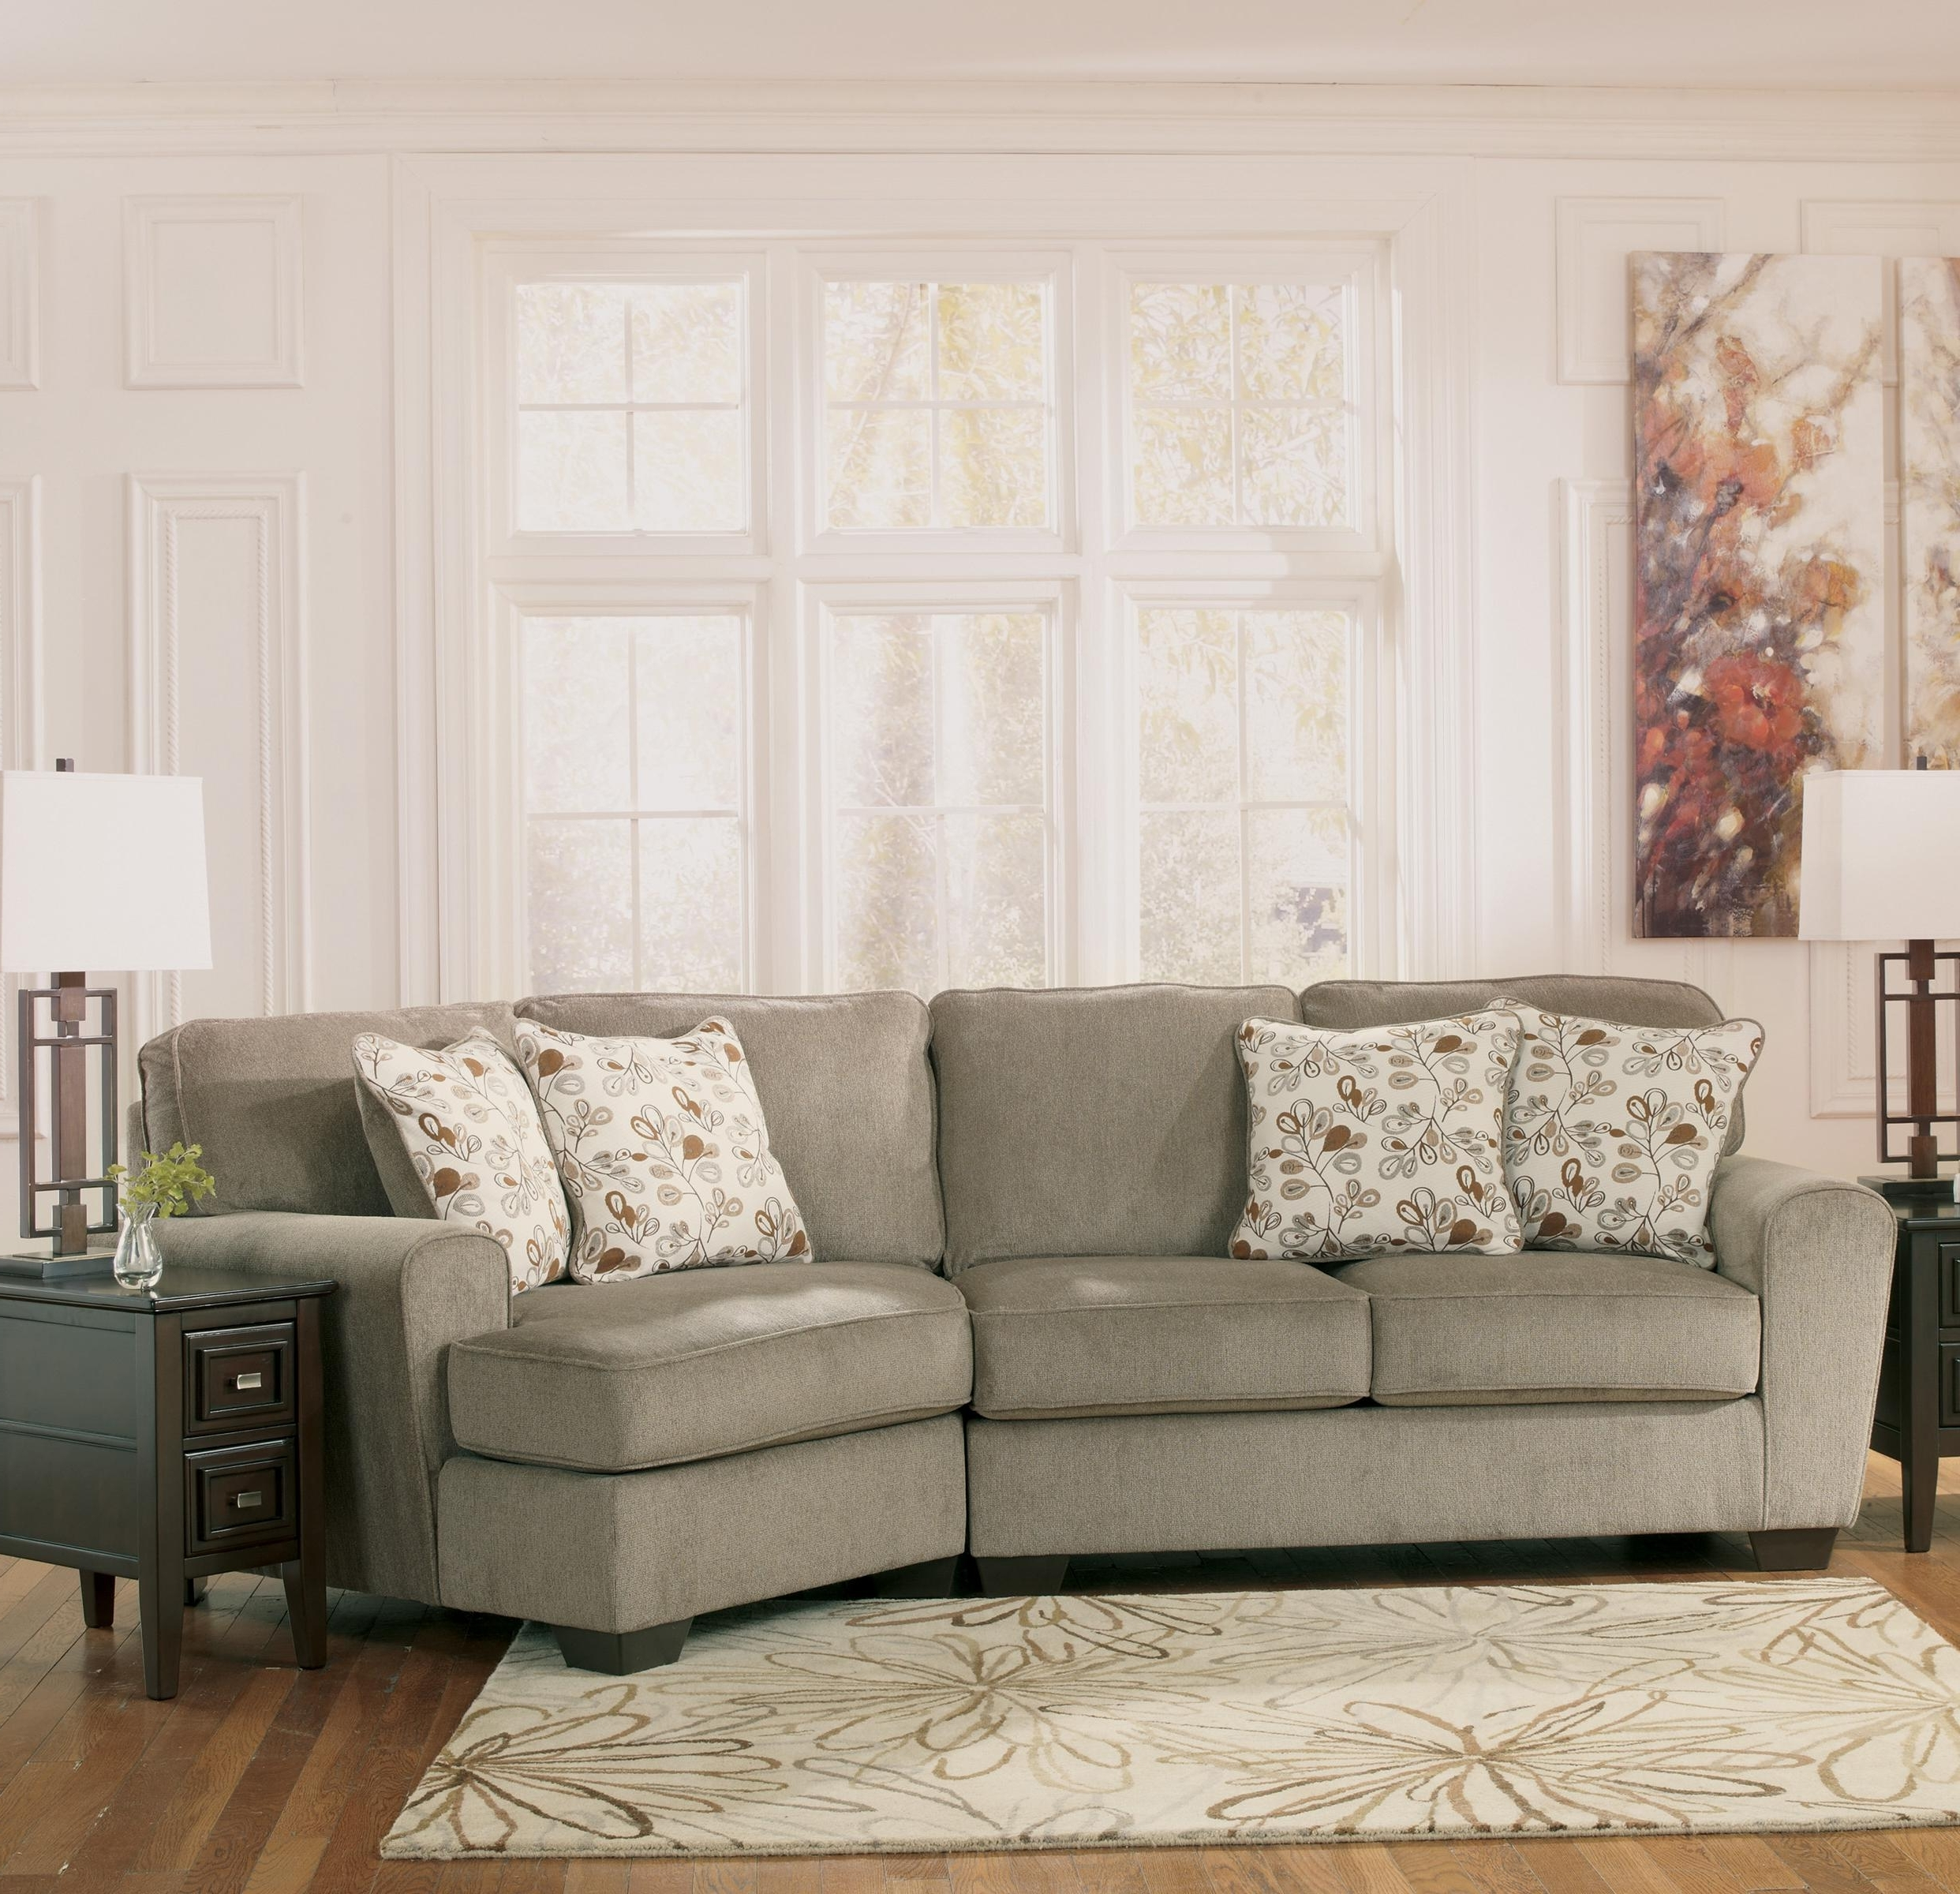 Newest Ashley Furniture Patola Park – Patina 2 Piece Sectional With Right Inside Sectional Sofas With Cuddler (View 15 of 15)